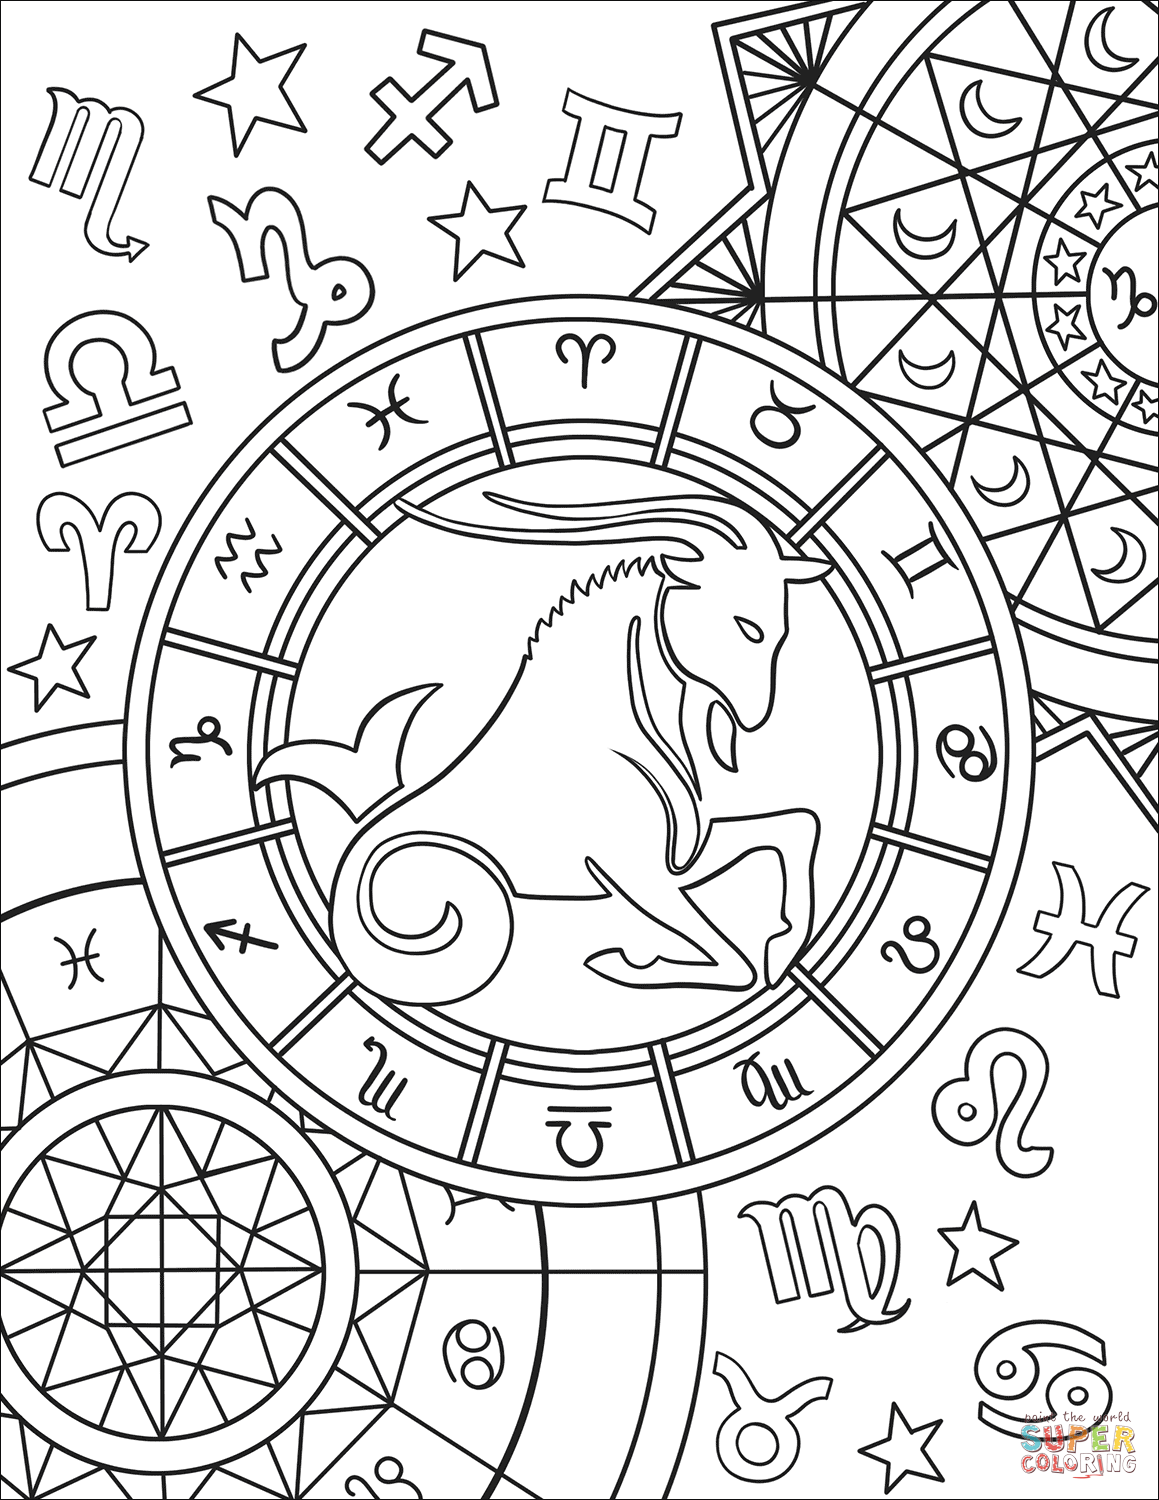 Capricorn Zodiac Sign Coloring Page Free Printable Coloring Pages Zodiac Signs Colors Coloring Pages Zodiac Capricorn